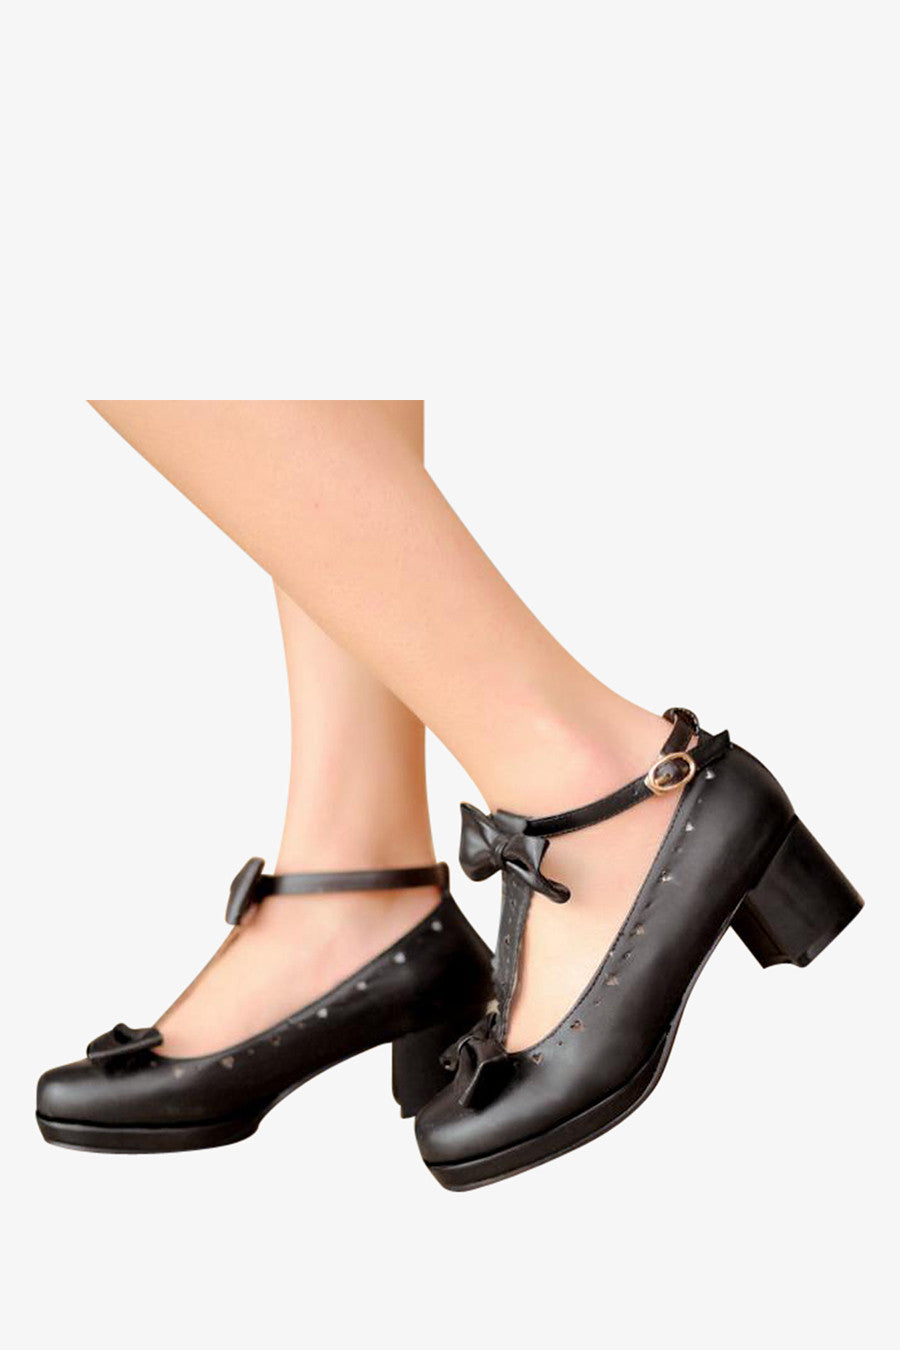 Lolita Black T-Strap Shoes